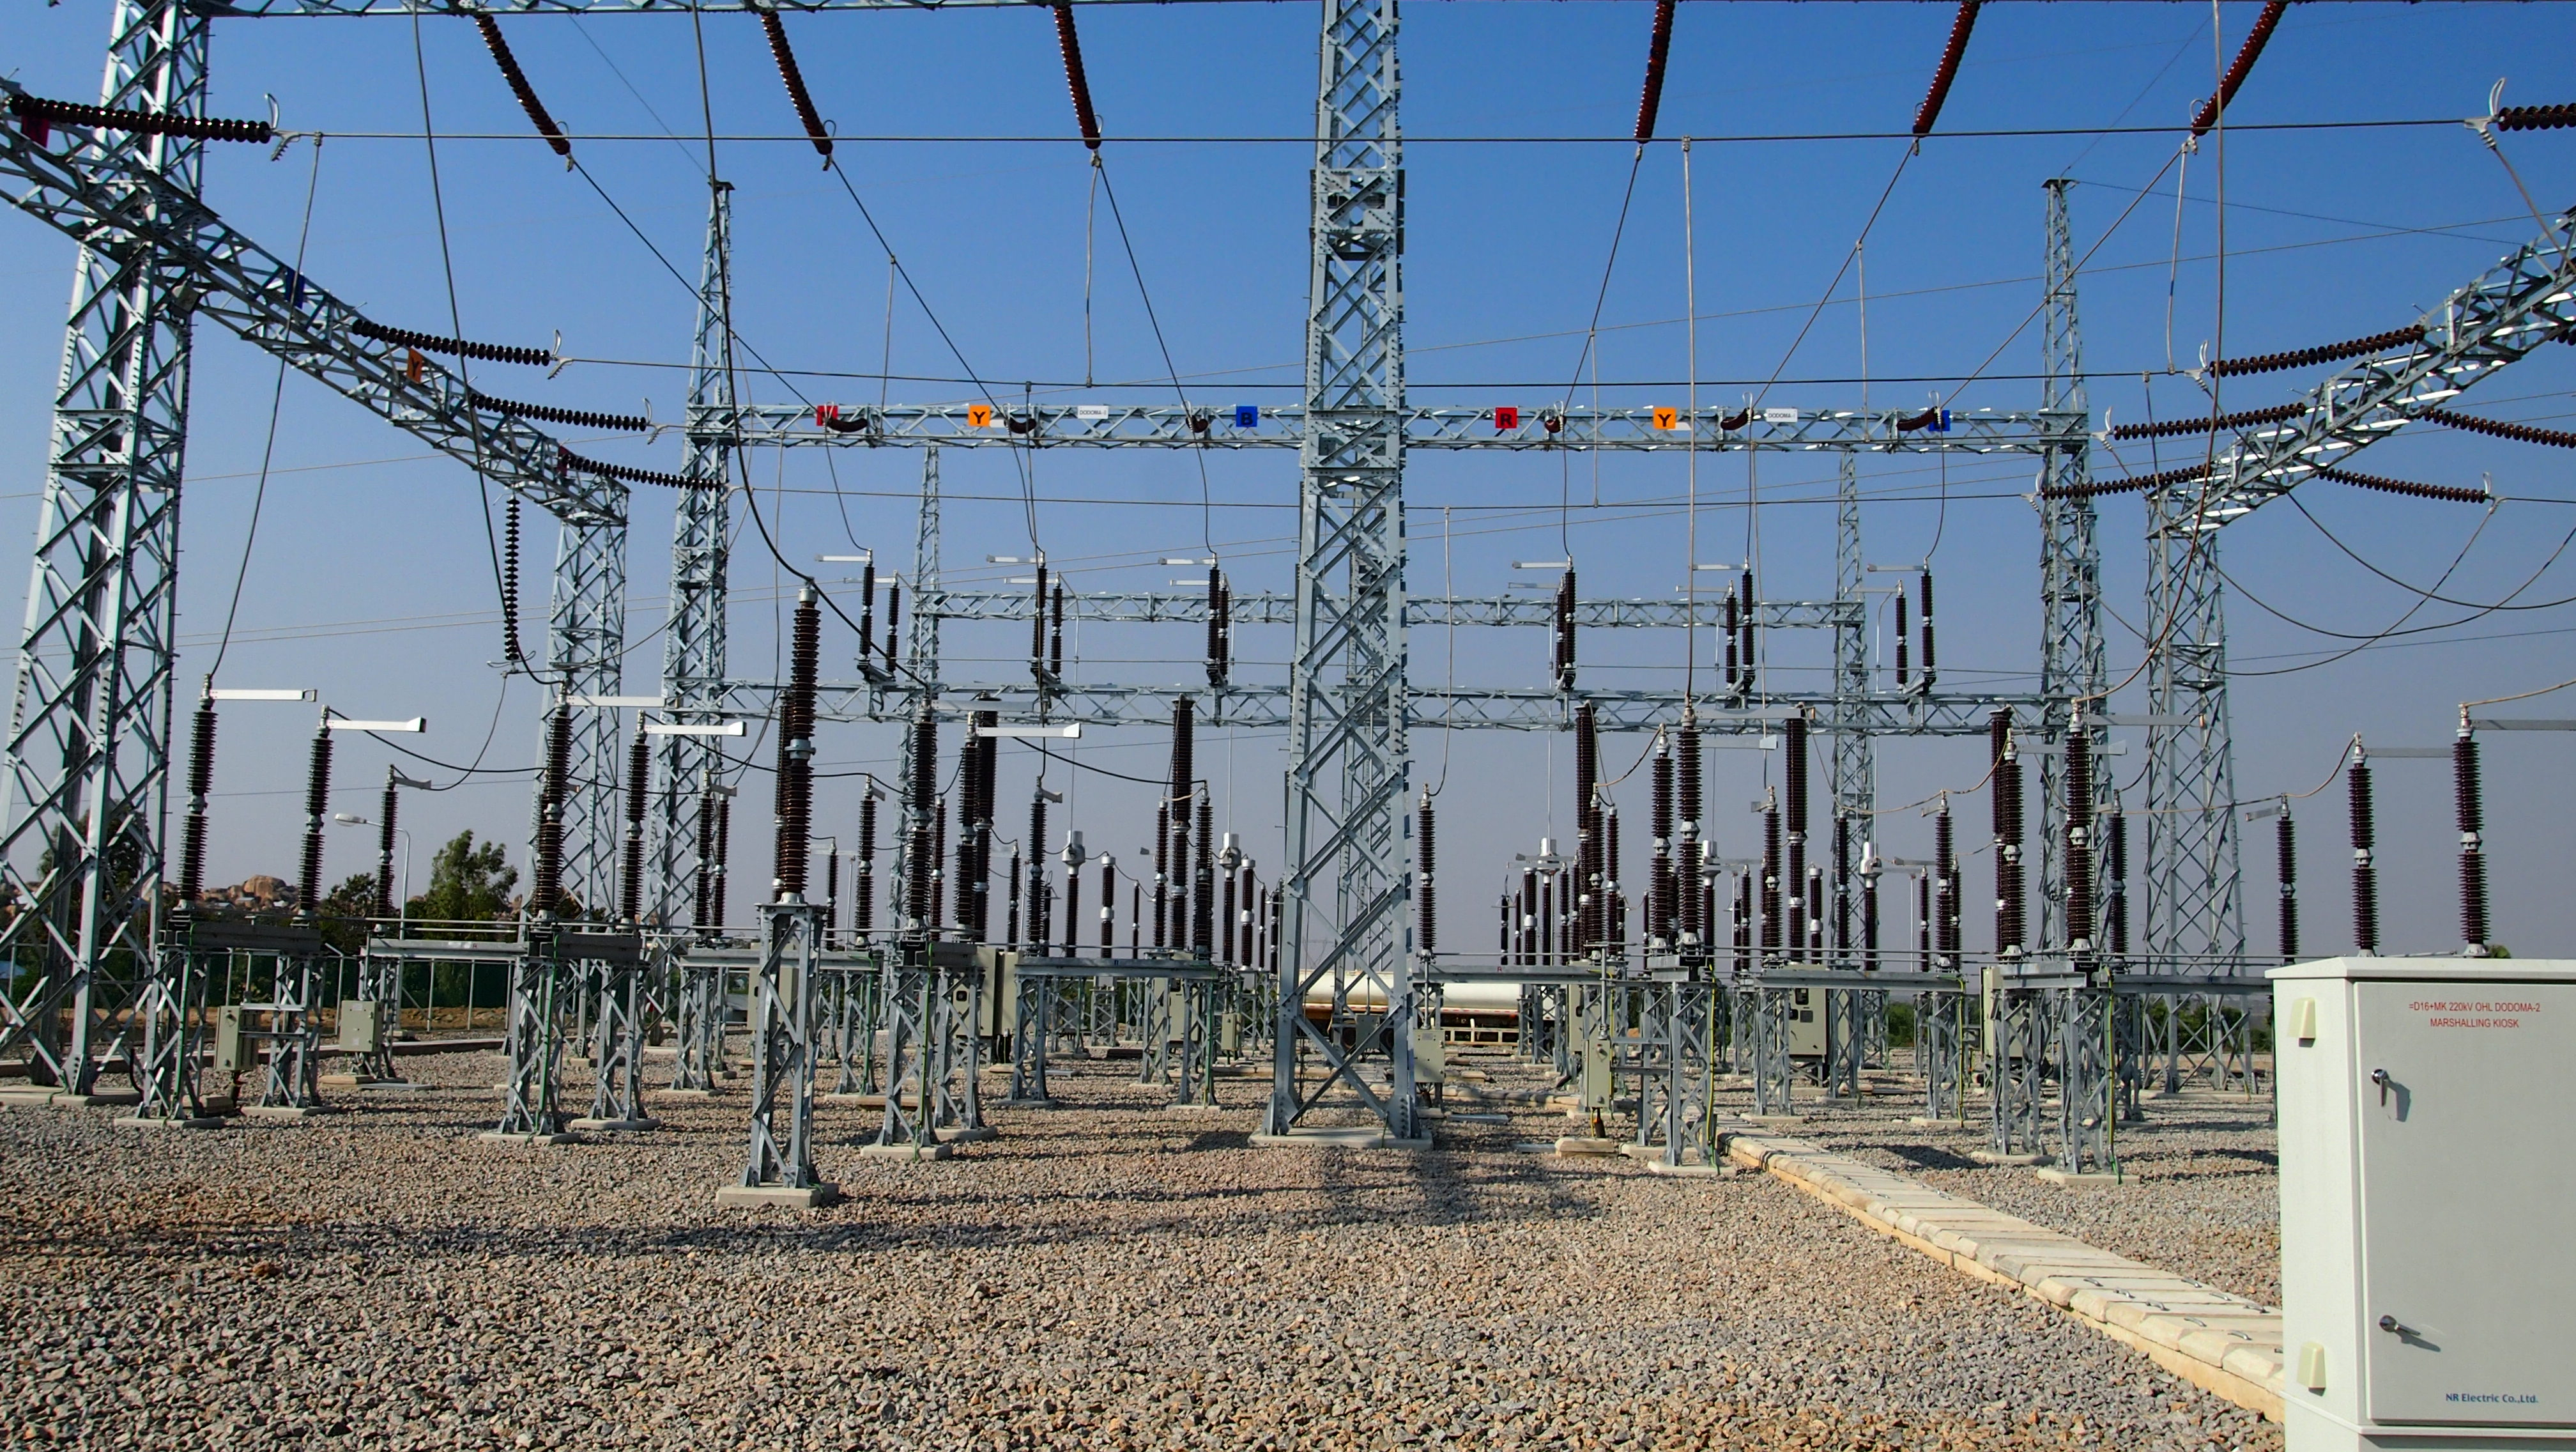 BTIP Upgrading 4 x 220kV Substation